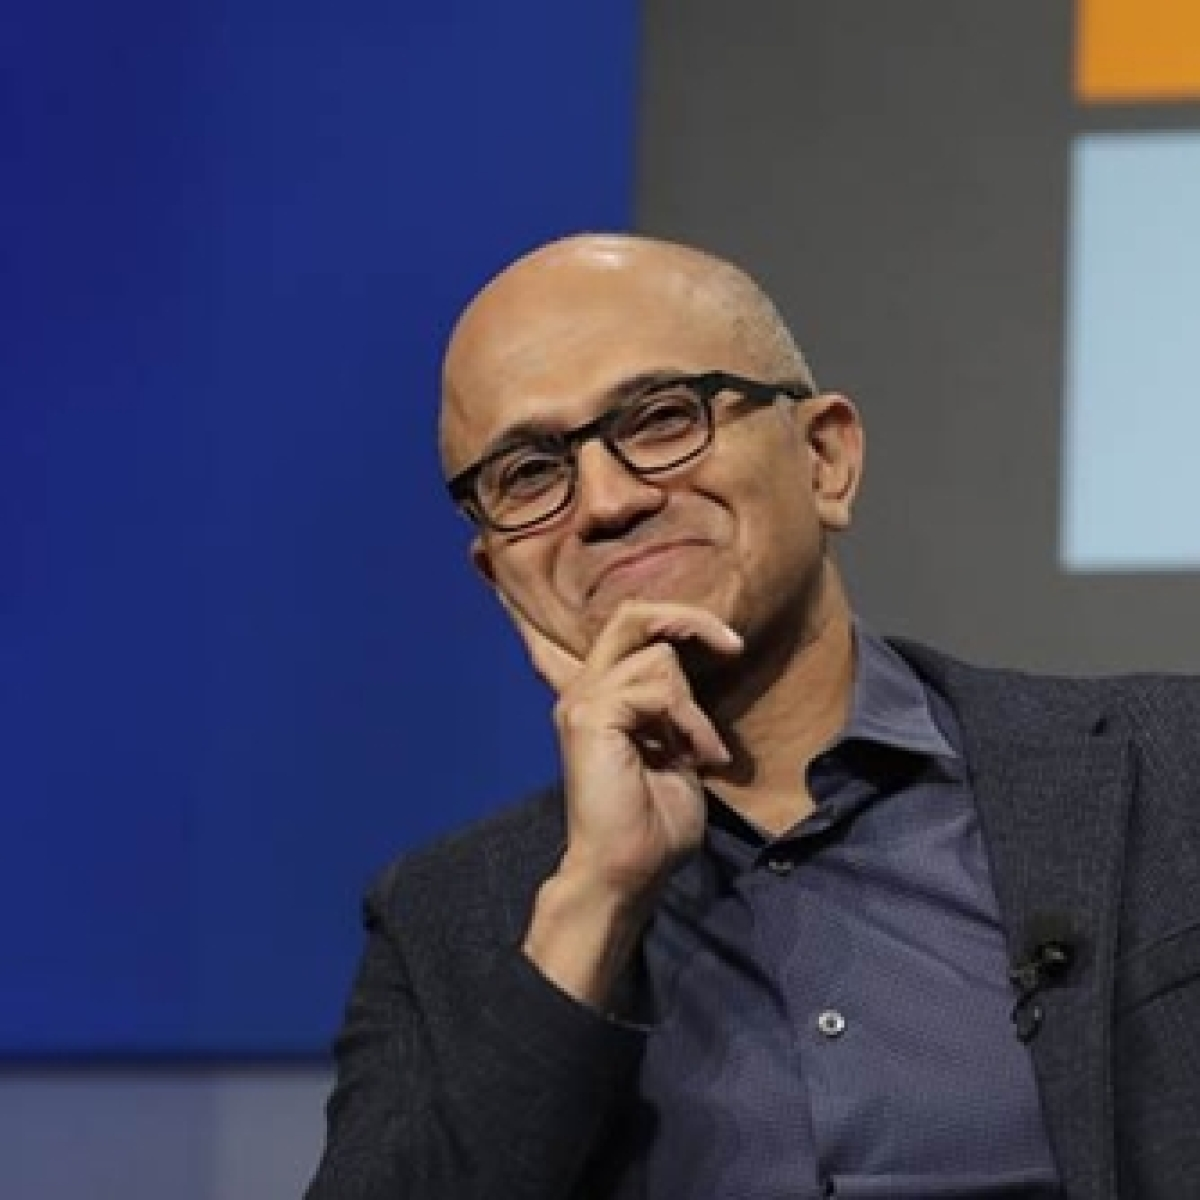 'Perfect example of how literate need to be educated': BJP MP targets Microsoft CEO Satya Nadella